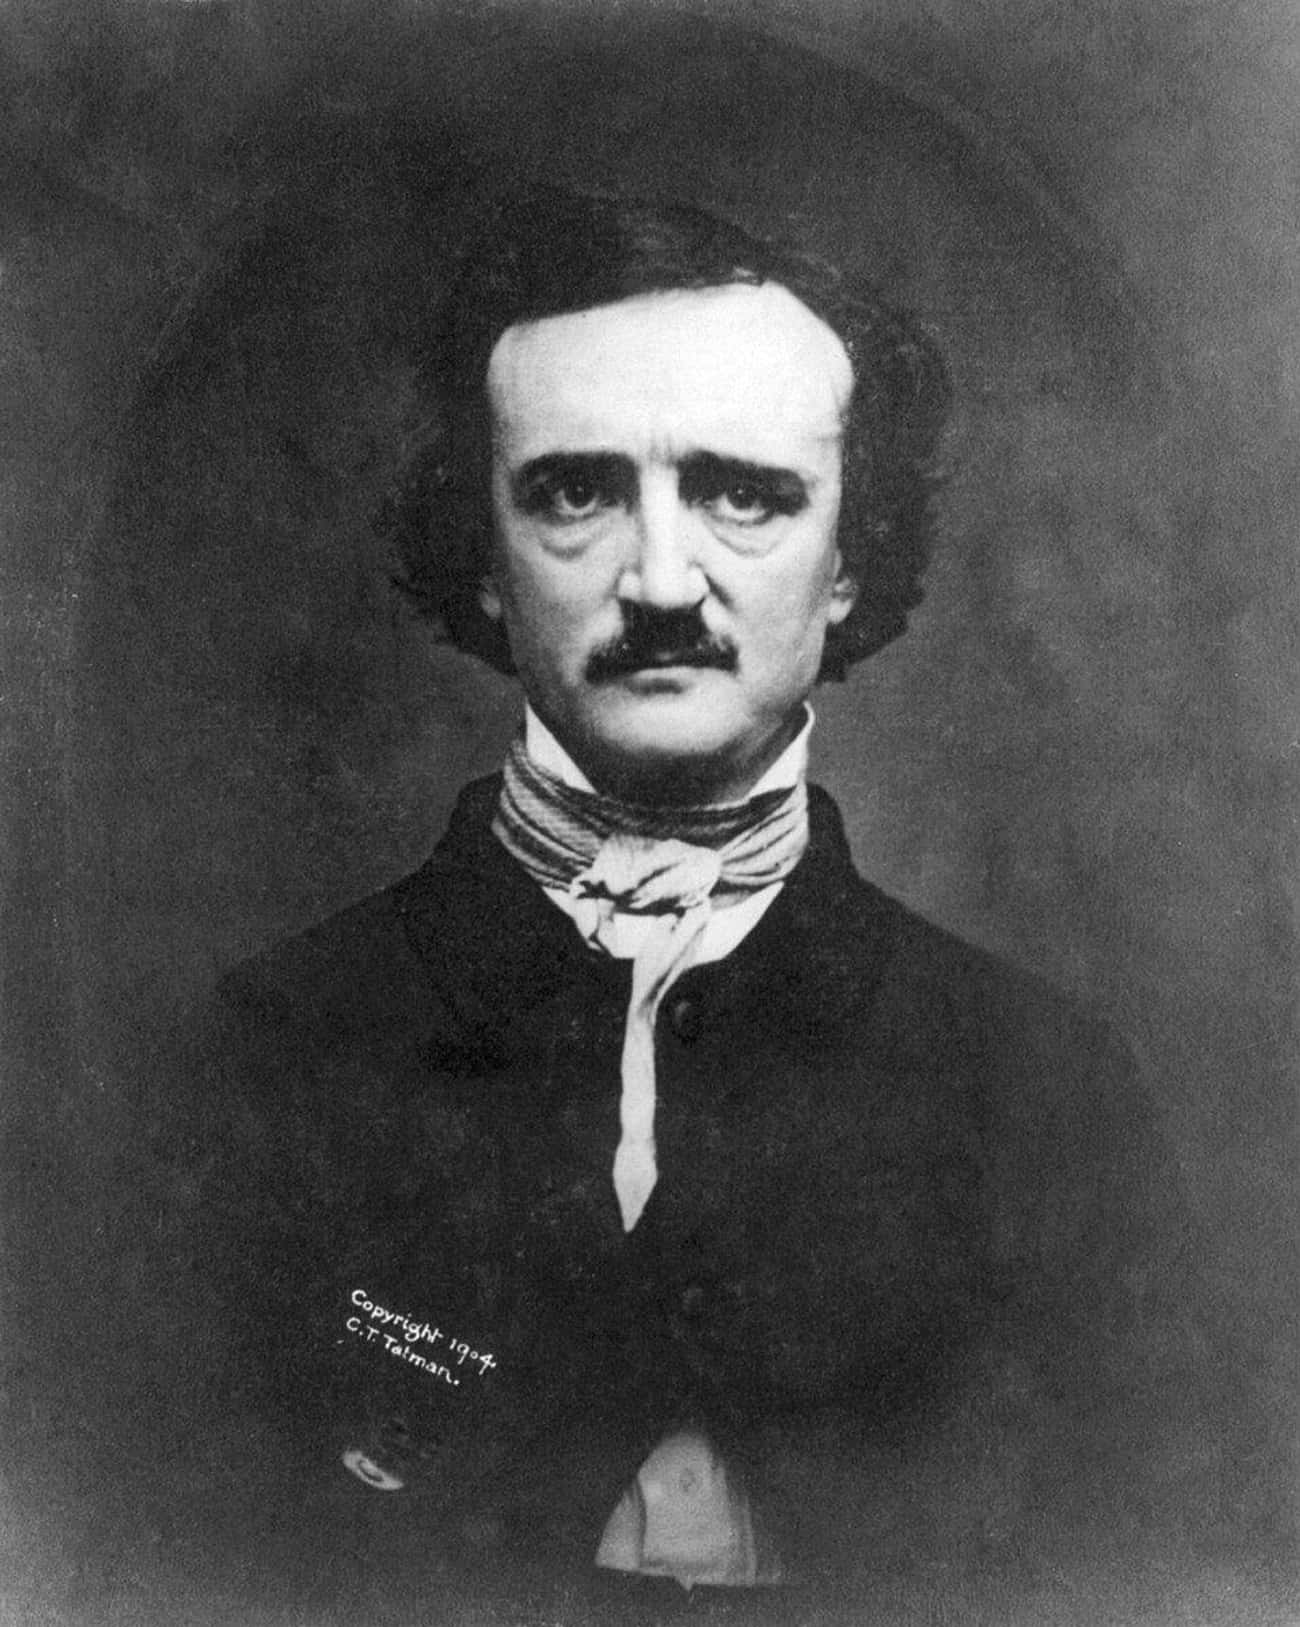 Edgar Allan Poe And Rufus Gris is listed (or ranked) 4 on the list 10 Pairs of Historical Figures You Had No Idea Hated Each Other